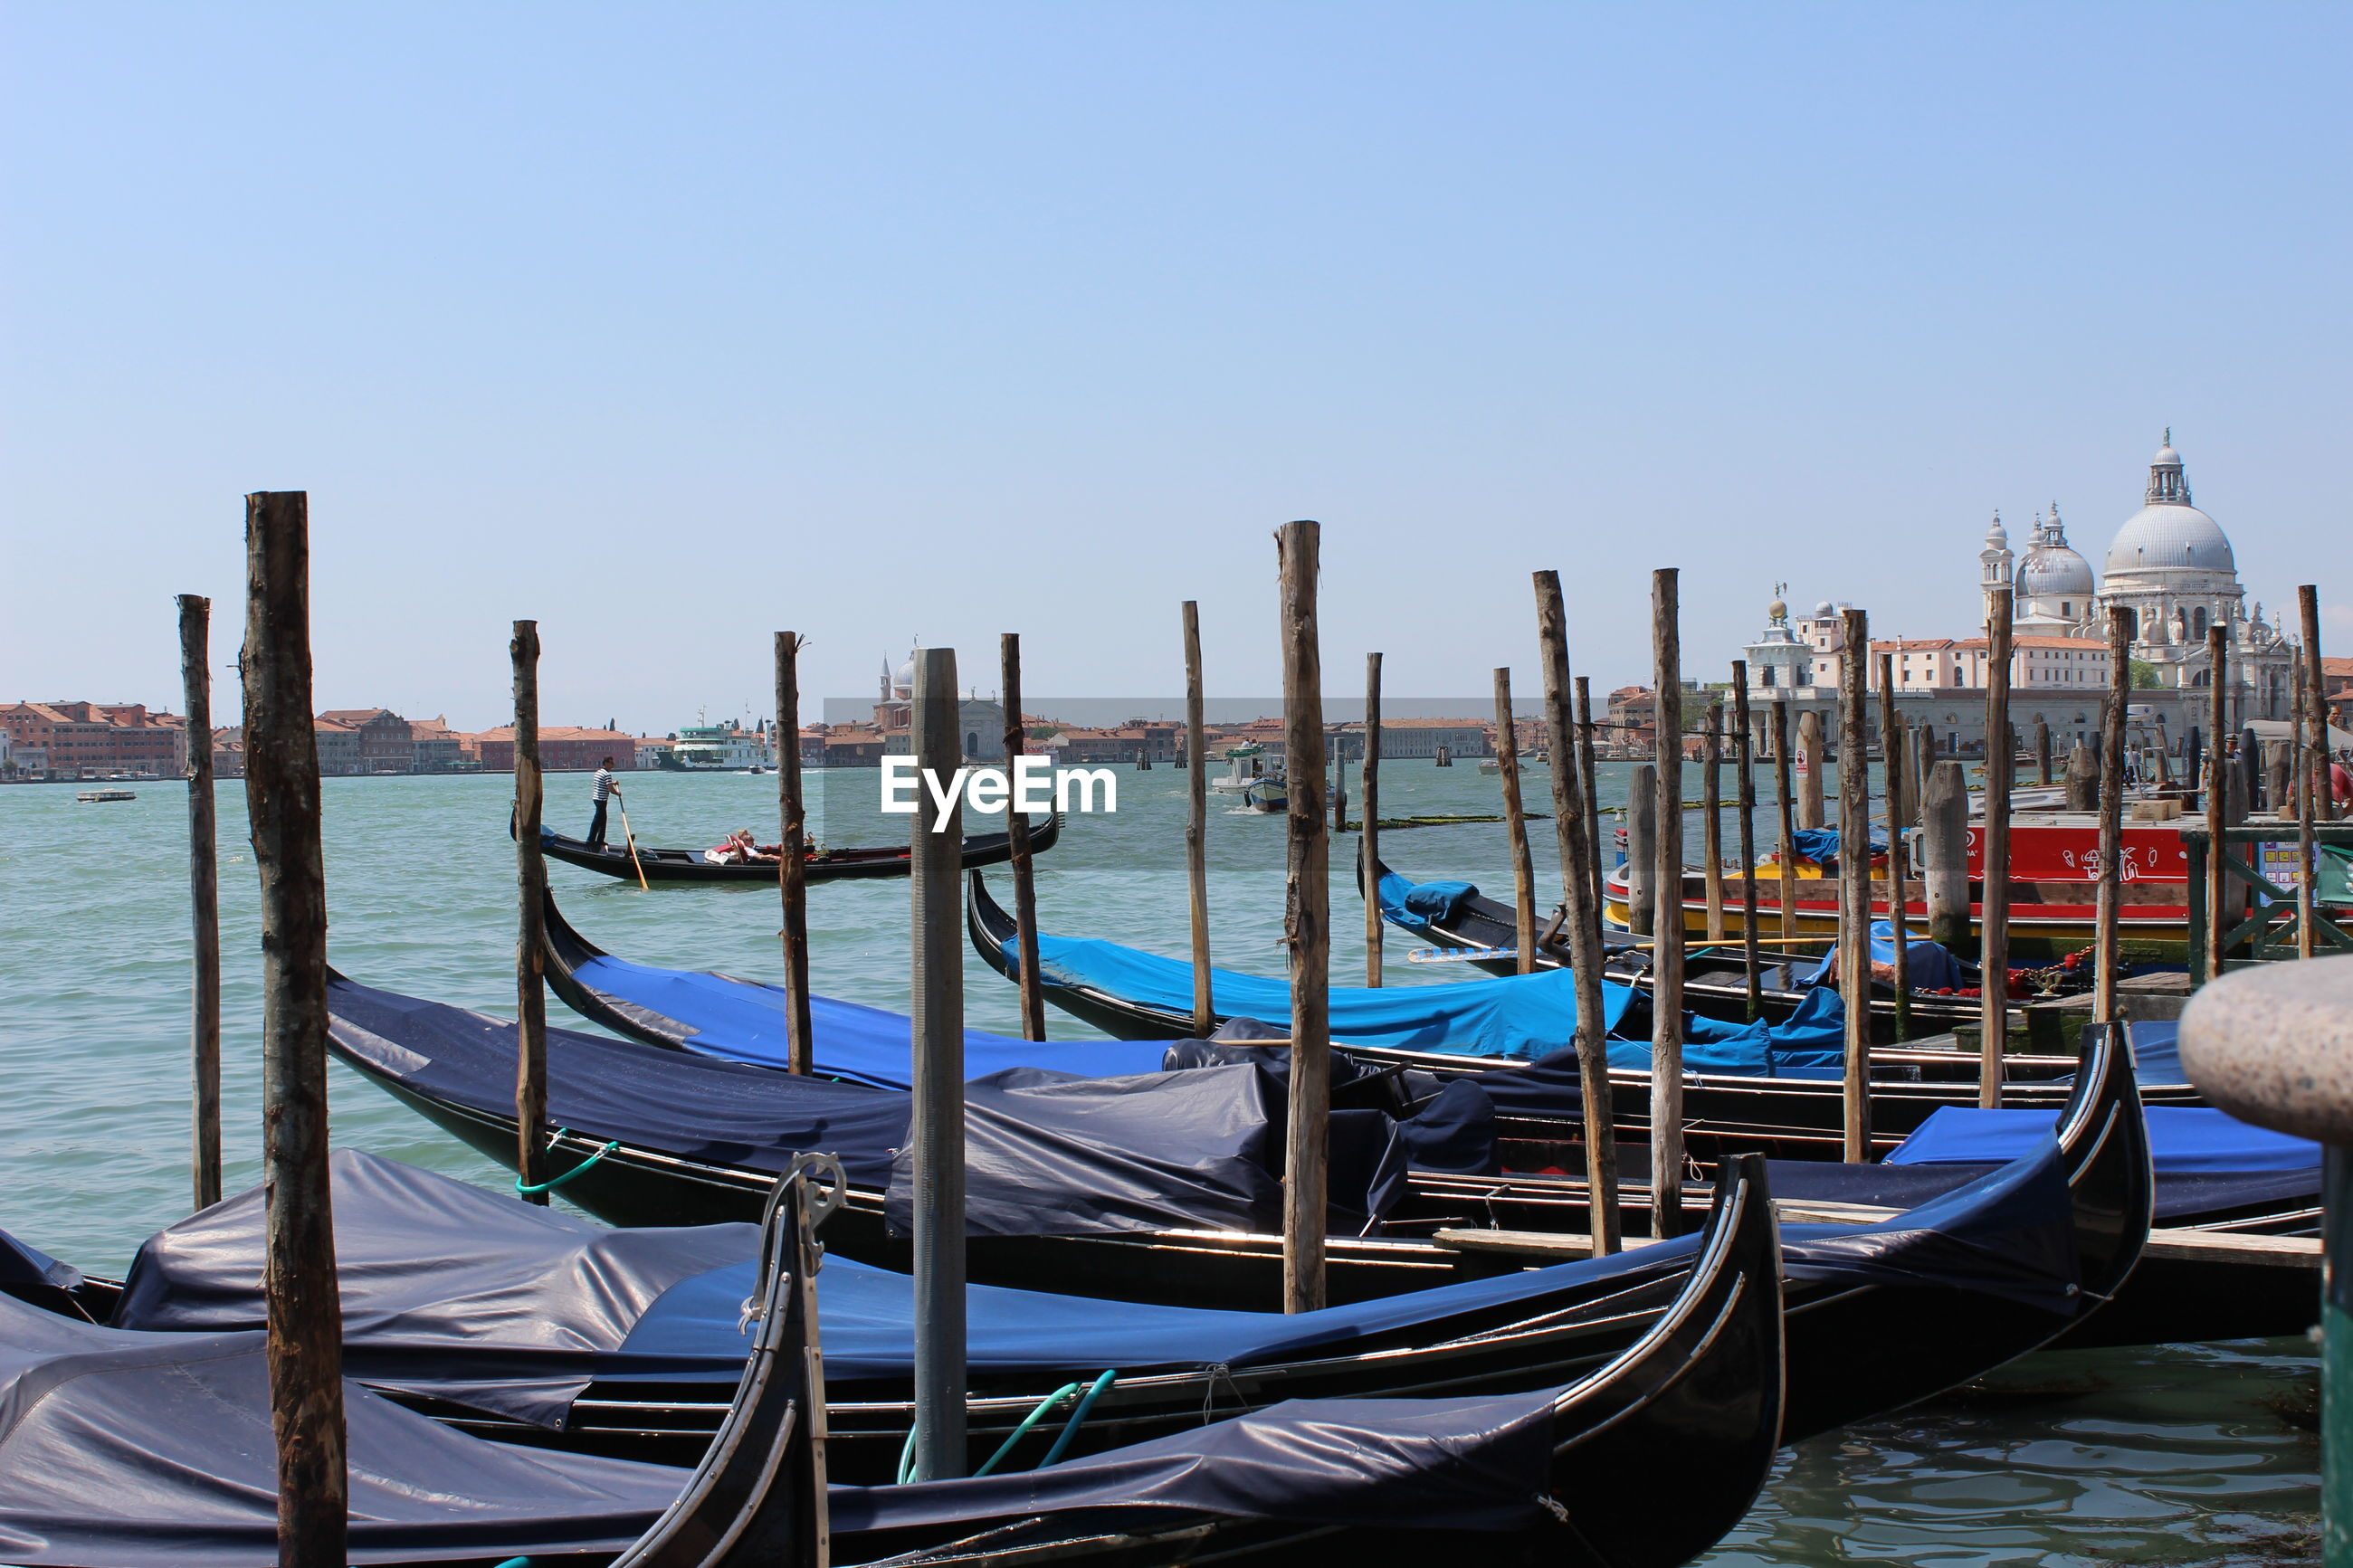 Gondolas moored in grand canal against clear sky